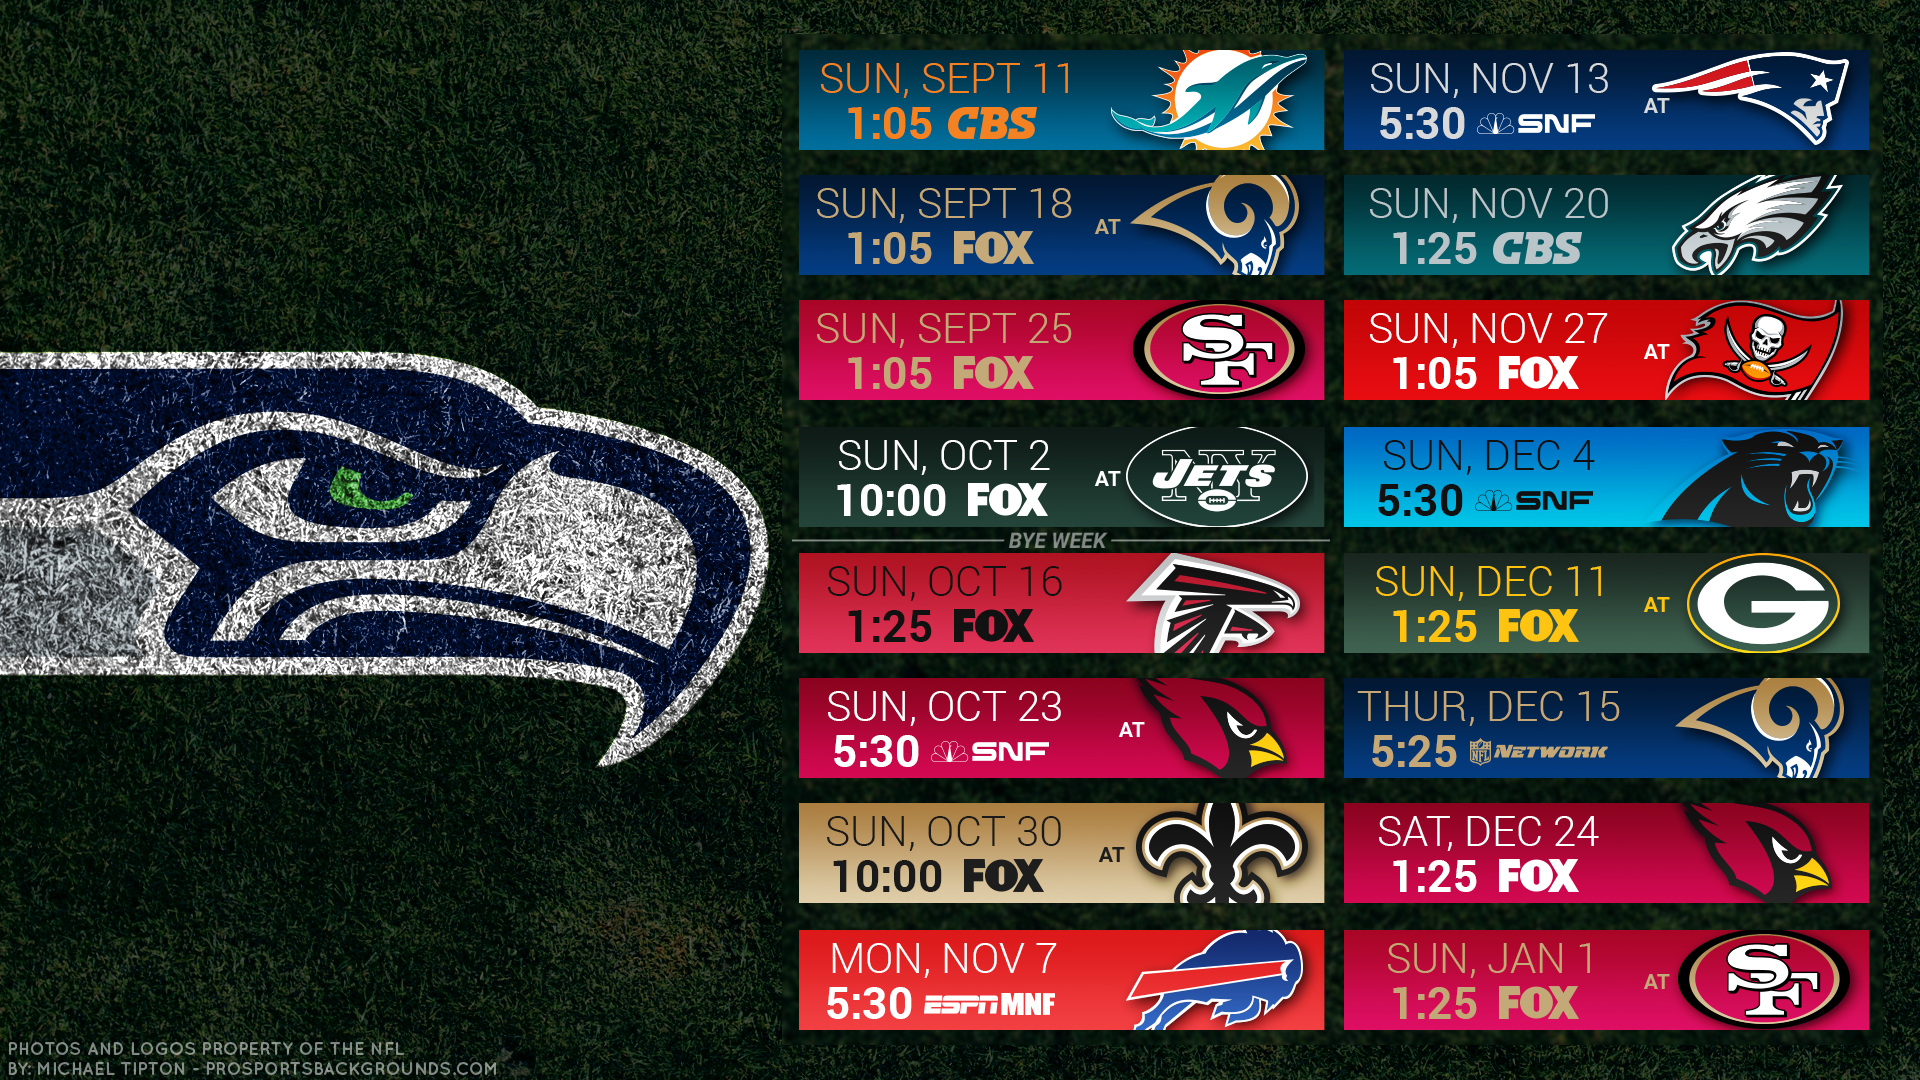 Seahawks schedule wallpaper sf wallpaper seattle seahawks 2017 hd 4k schedule wallpaper voltagebd Image collections